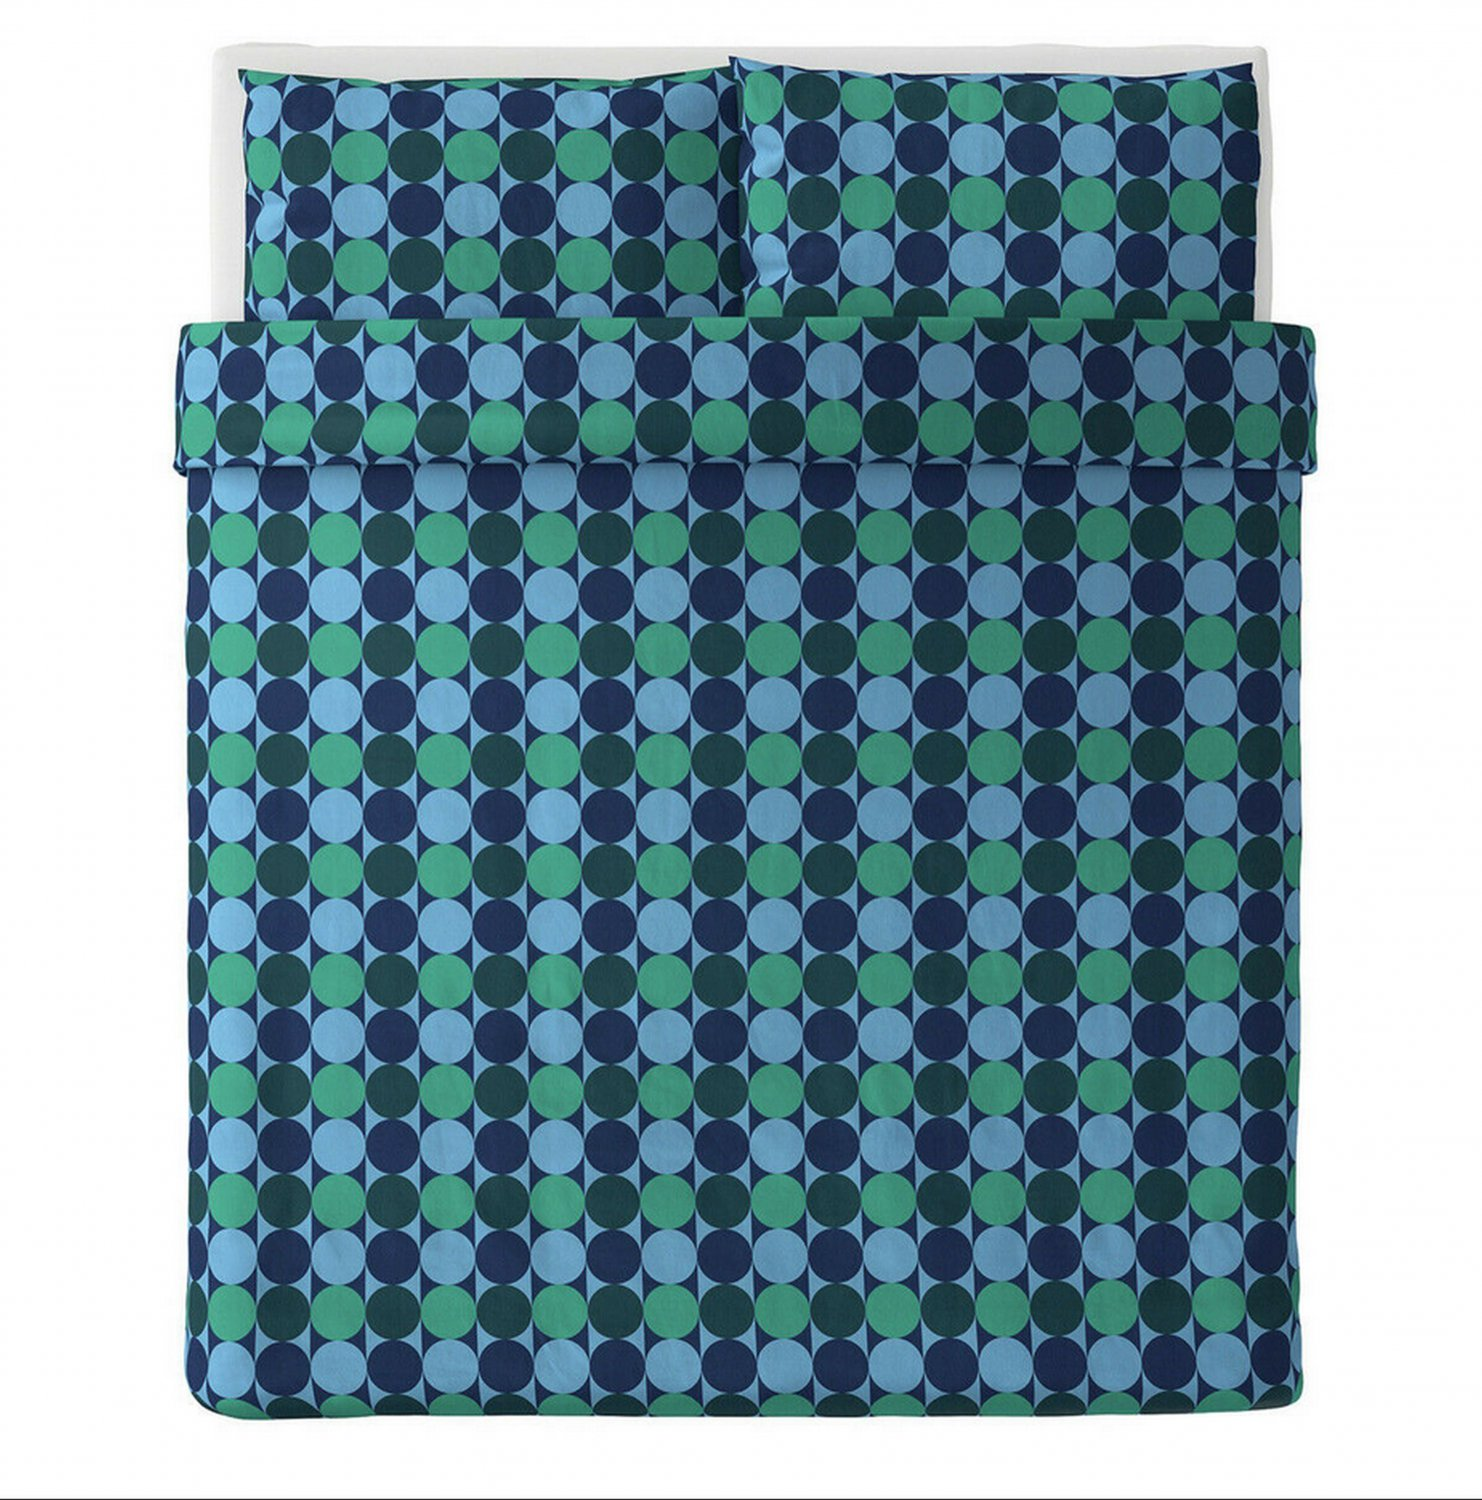 IKEA Krokuslilja Blue Green KING Duvet COVER Pillowcases Set Dots Circles Stripes Retro 60s Modern